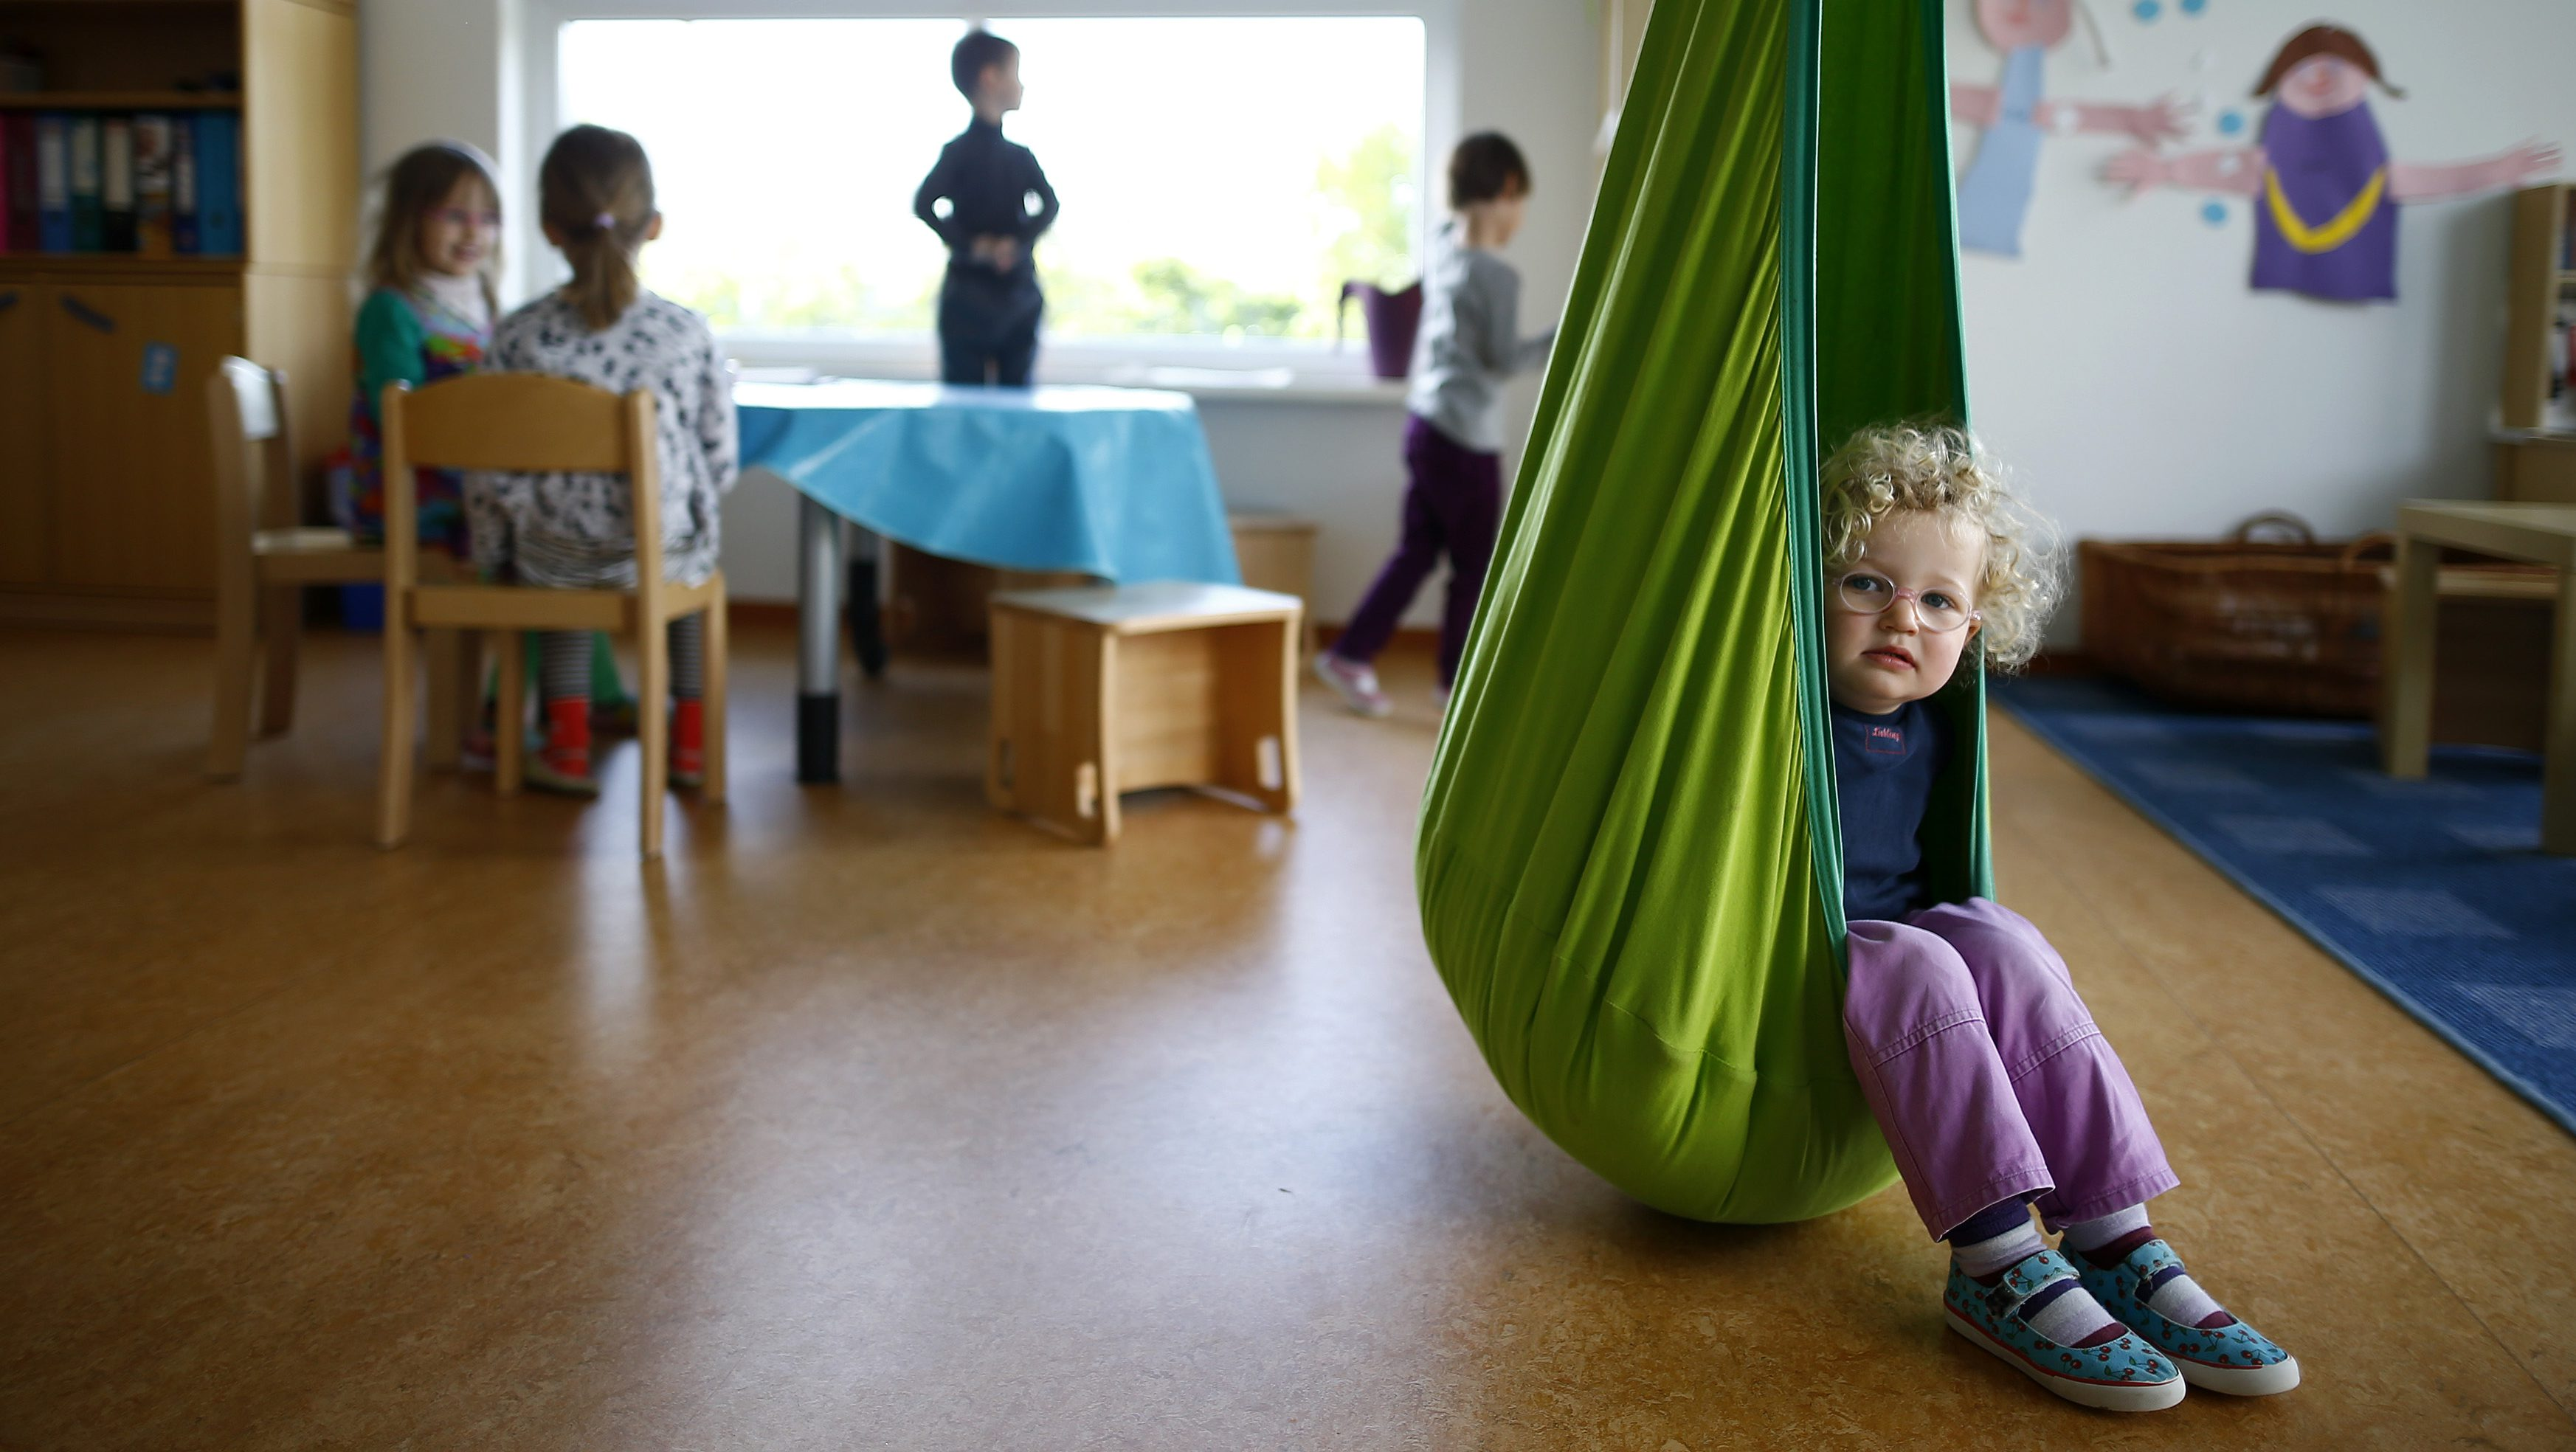 Sweden's gender-neutral preschools produce kids who are more likely to succeed